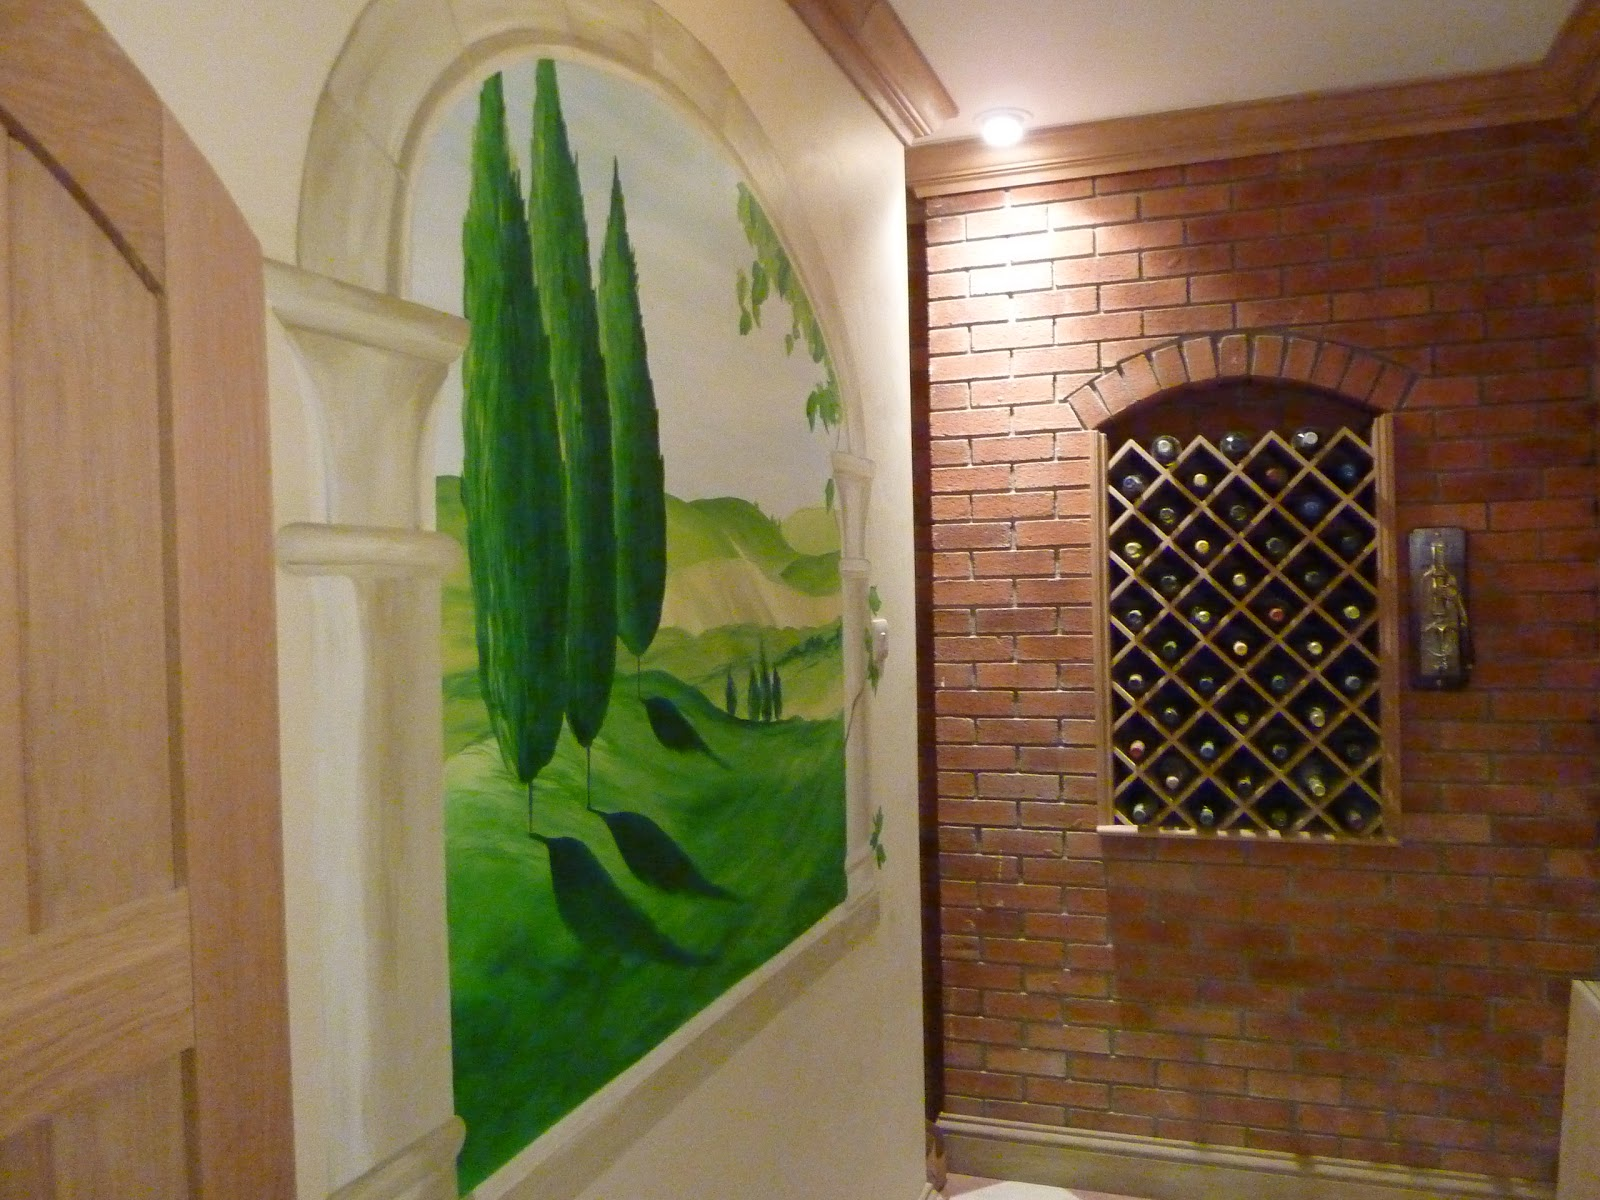 Joanna perry top mural artist hand painting murals across the not to sample some of the lovely wines while creating my tuscany vista wall mural please may i add all the wines were left untouched i promise amipublicfo Image collections